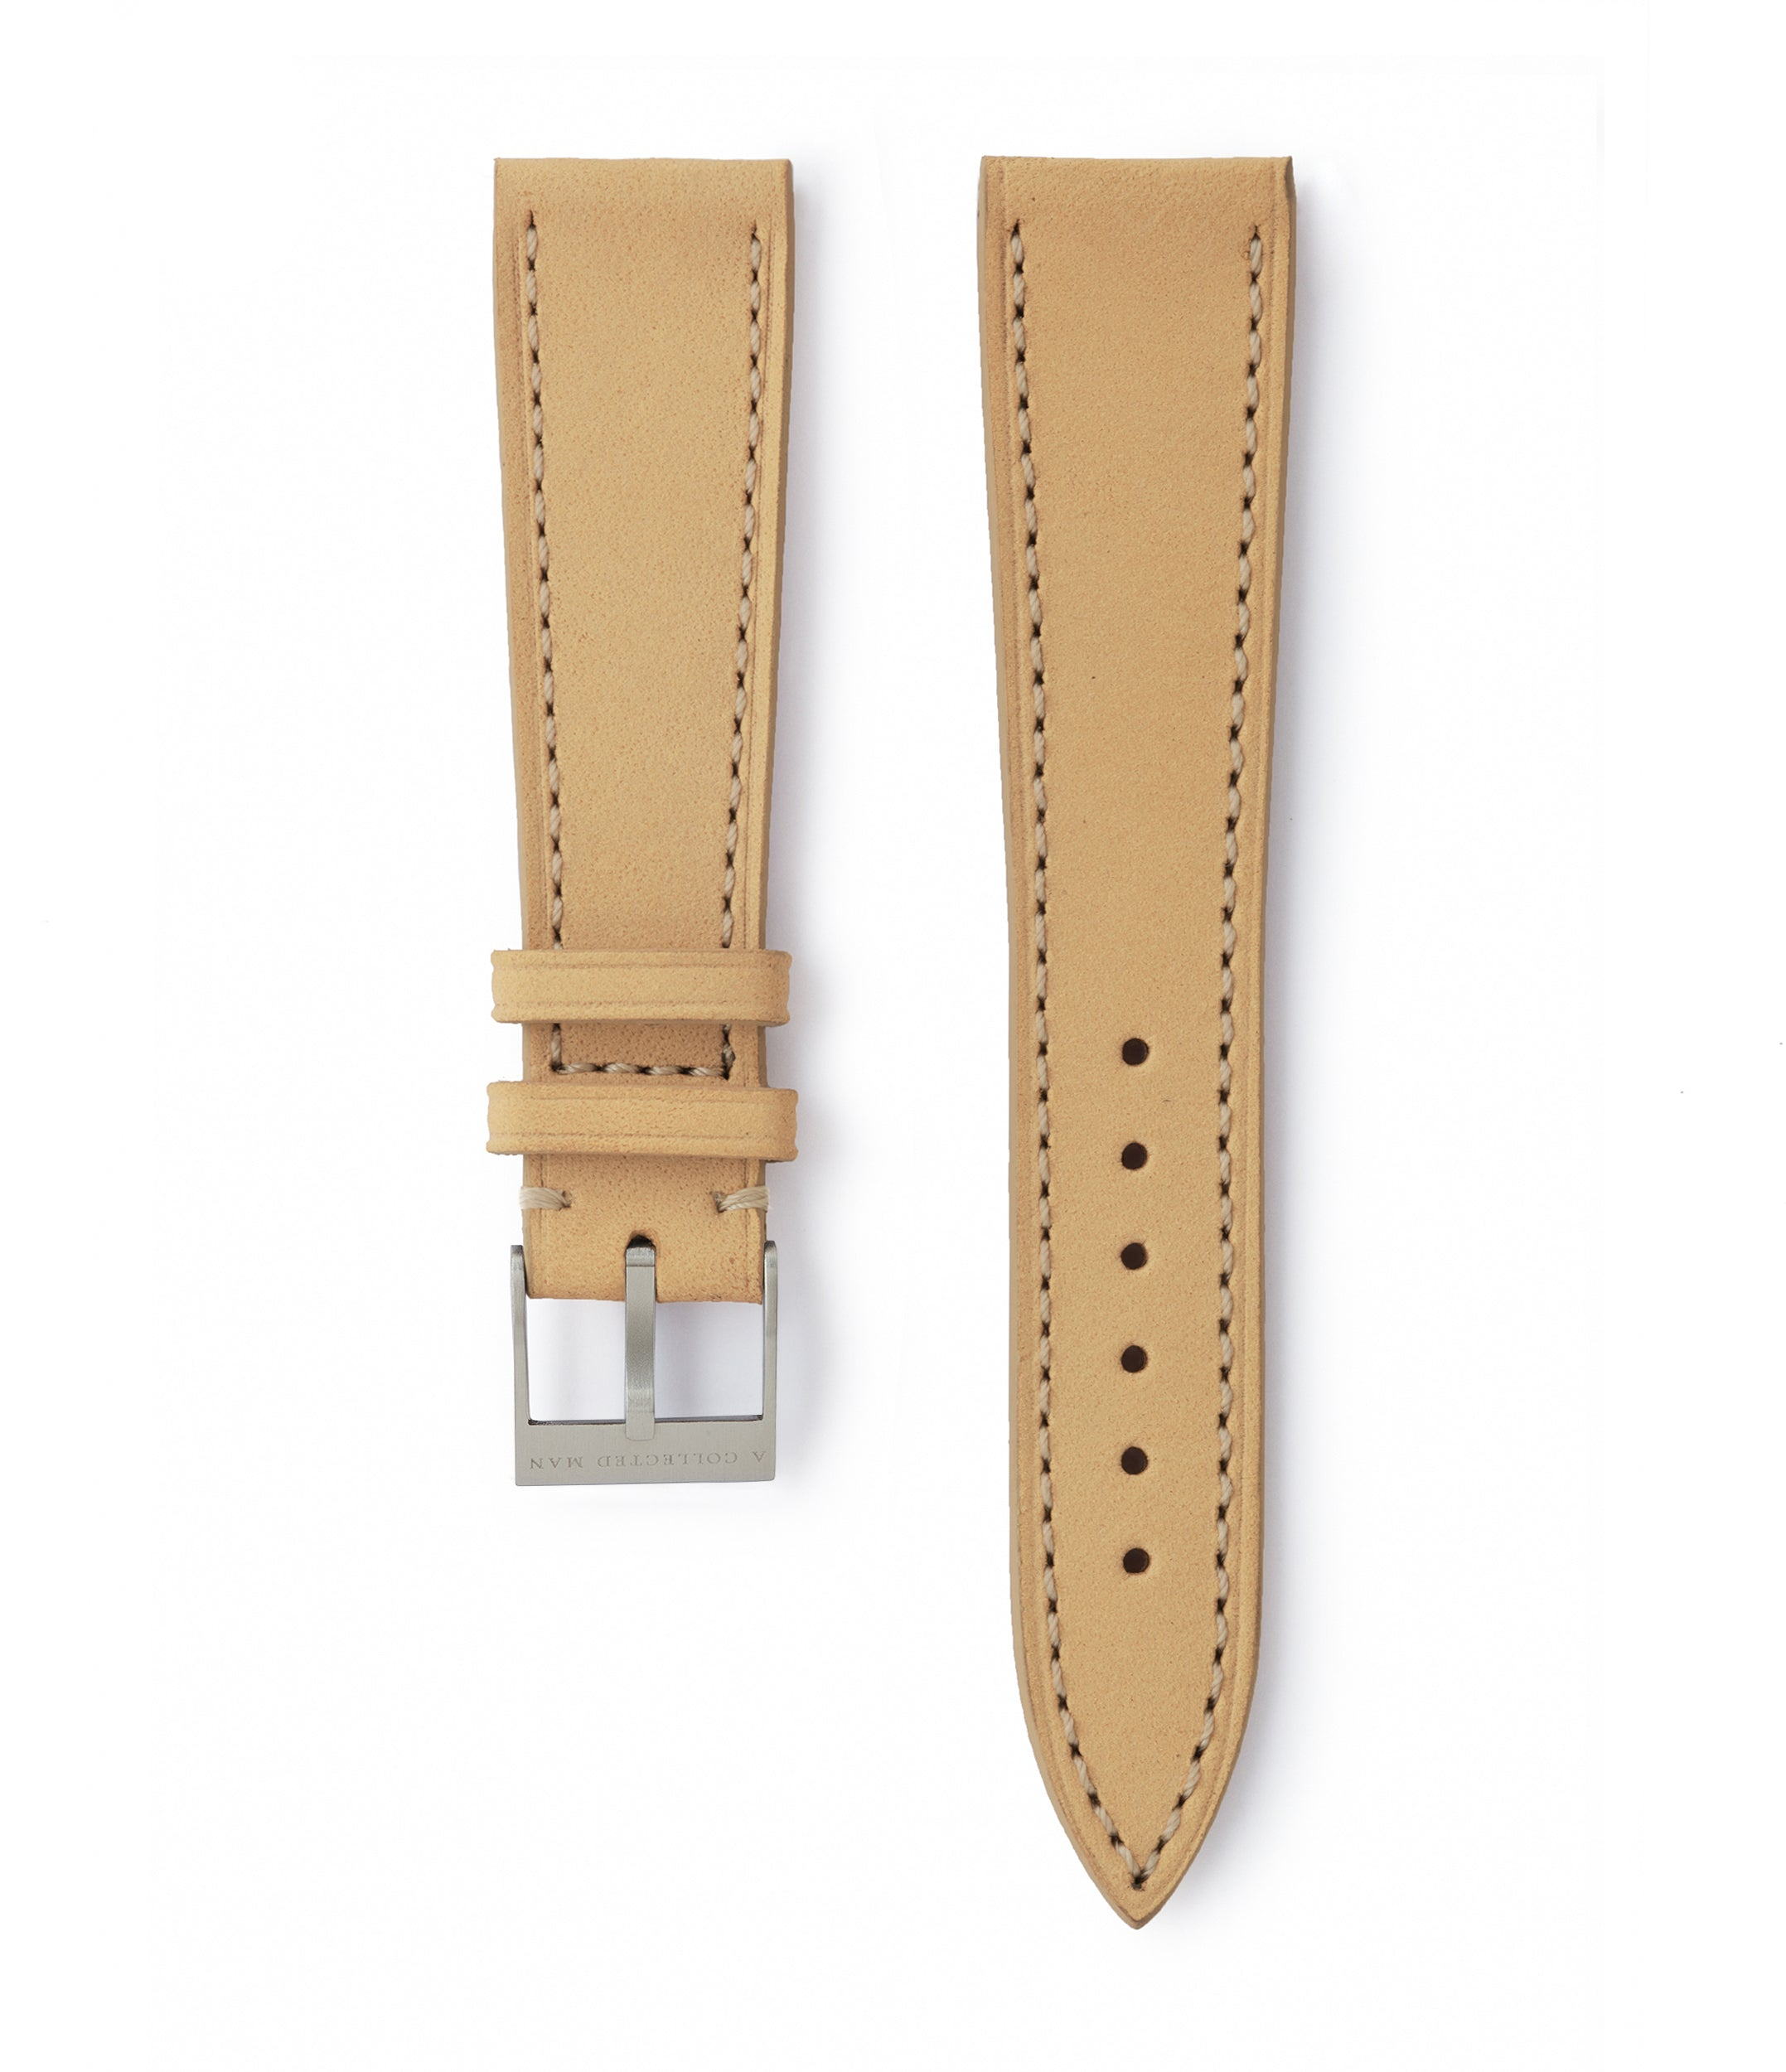 buy light sand nubuck leather watch strap Capri Molequin for sale order online at A Collected Man London